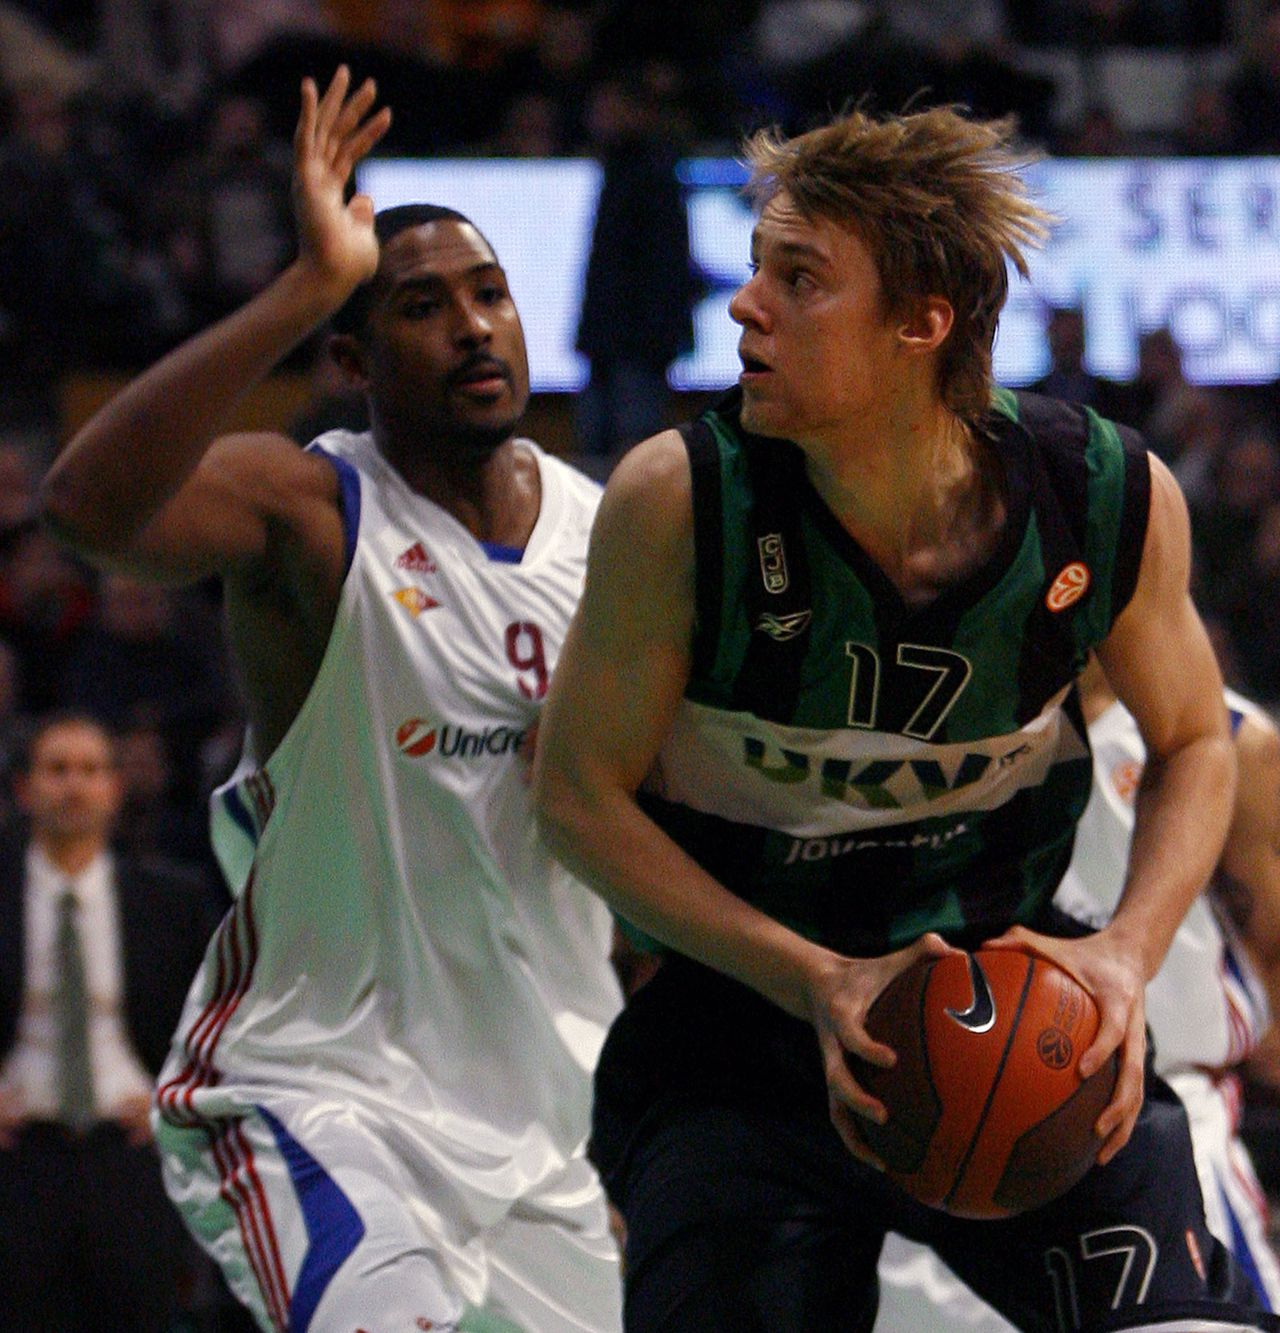 Dkv Joventut's Henk Norel (R) stretches for the ball with Lottomatica Roma Andre Hutson (L) in a EuroLeague basketball Group C match at the Olympic of Badalona on December 11, 2008. AFP PHOTO/JOSEP LAGO